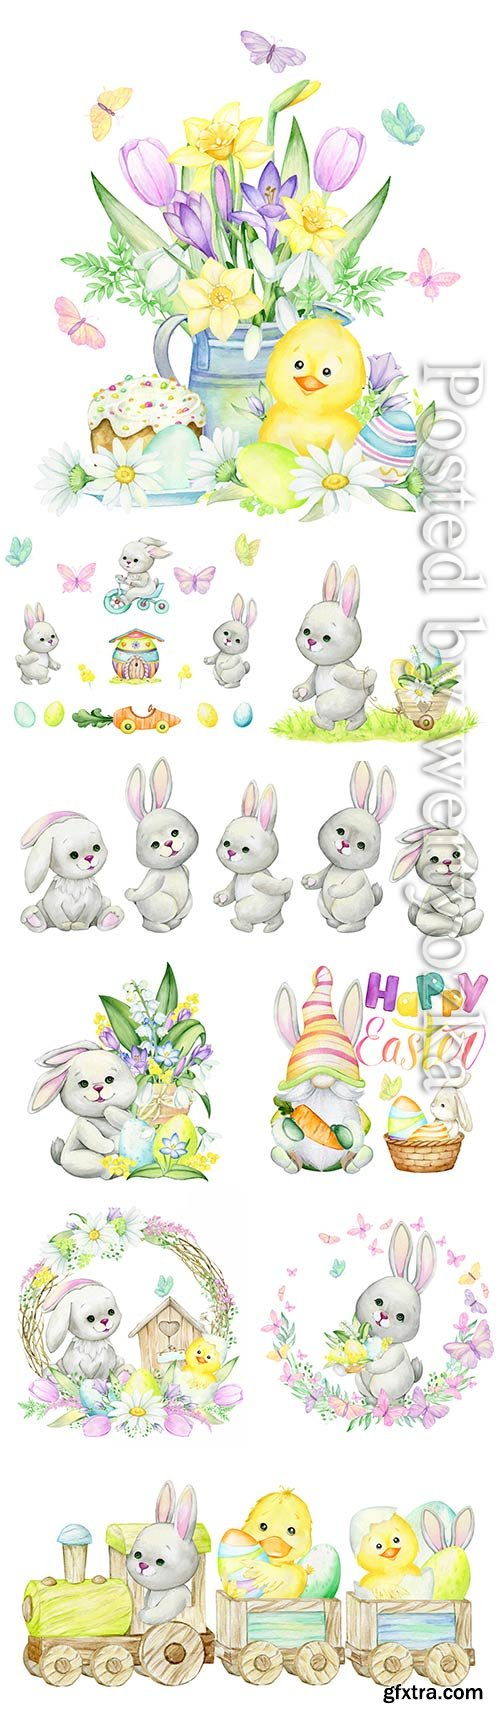 Rabbits, bicycle, easter eggs, butterflies, house, car, plant watercolor set of elements